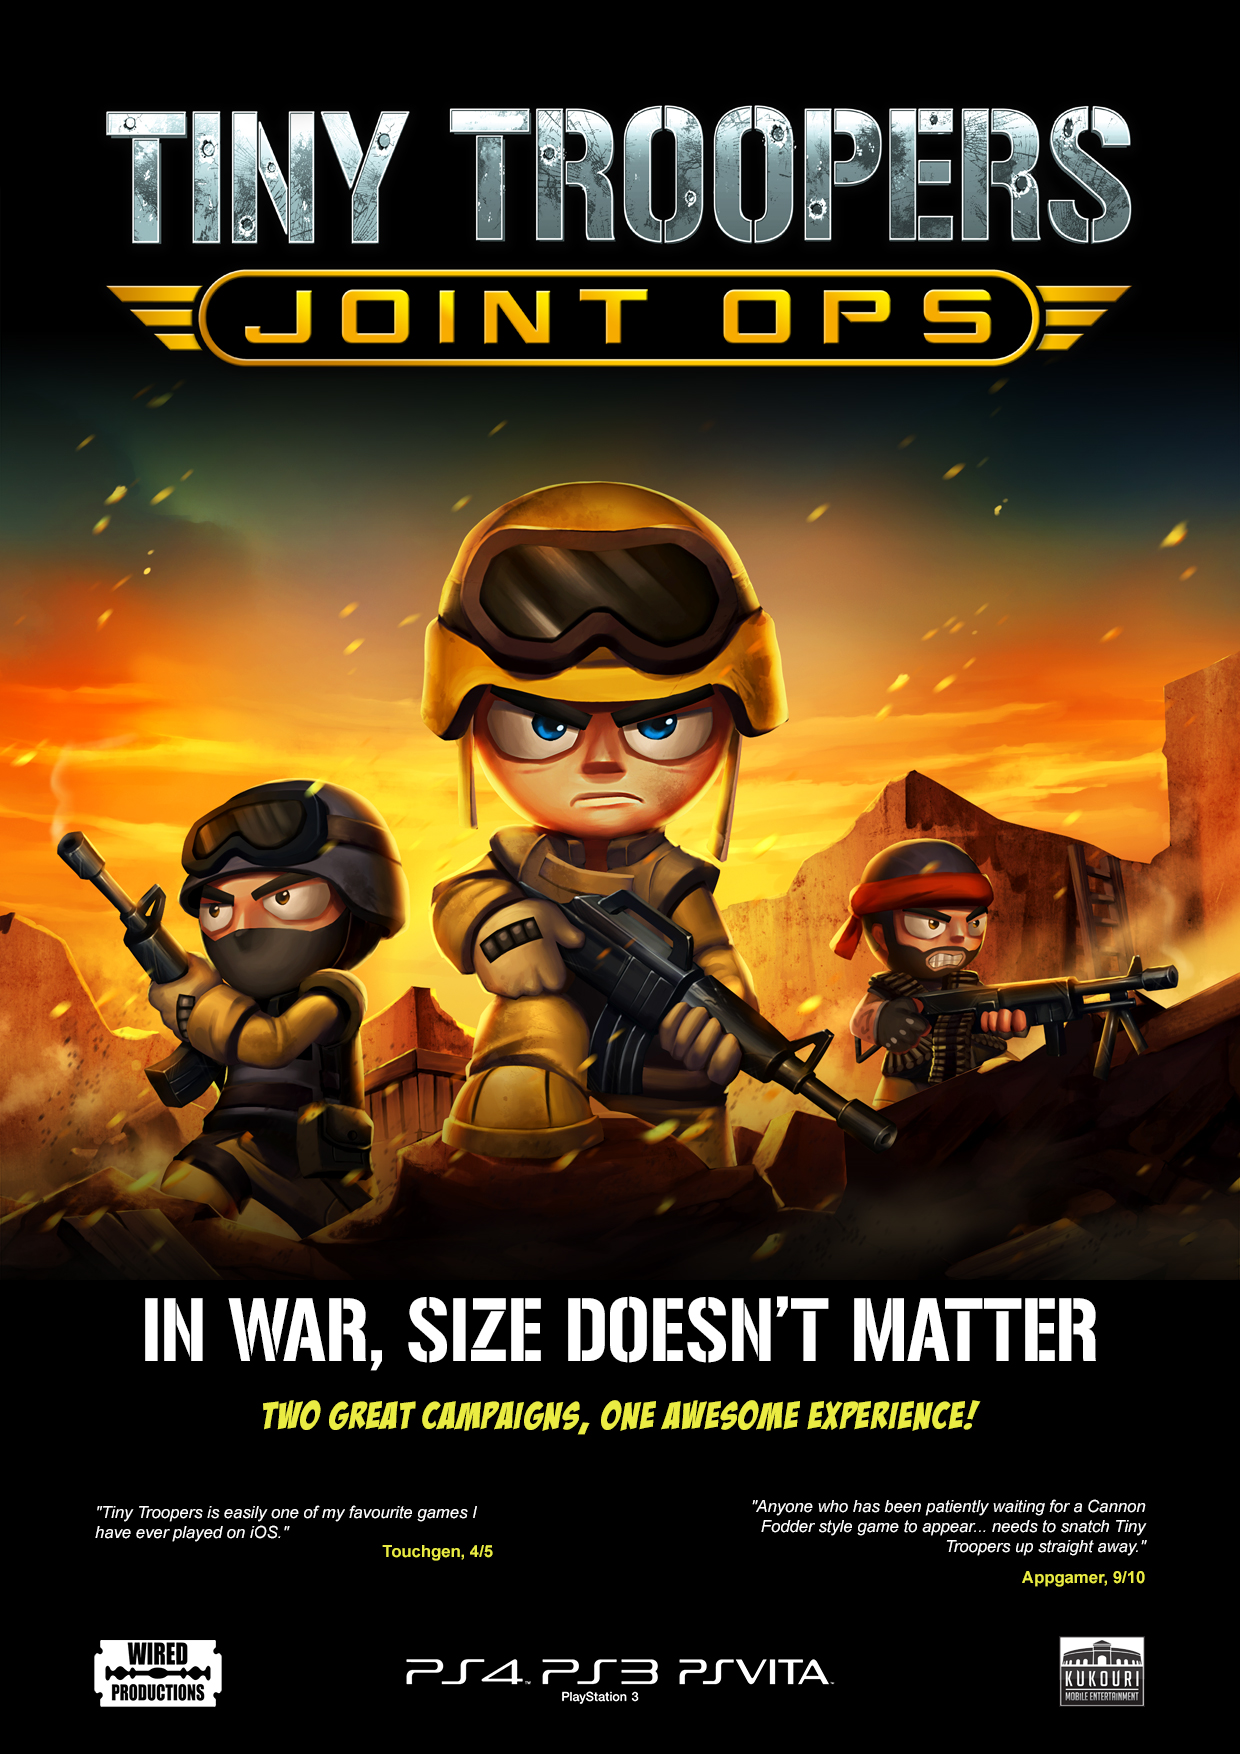 Tiny Troopers Joint Ops is heading to Vita in the form of a dual pack of twin-stick shooters